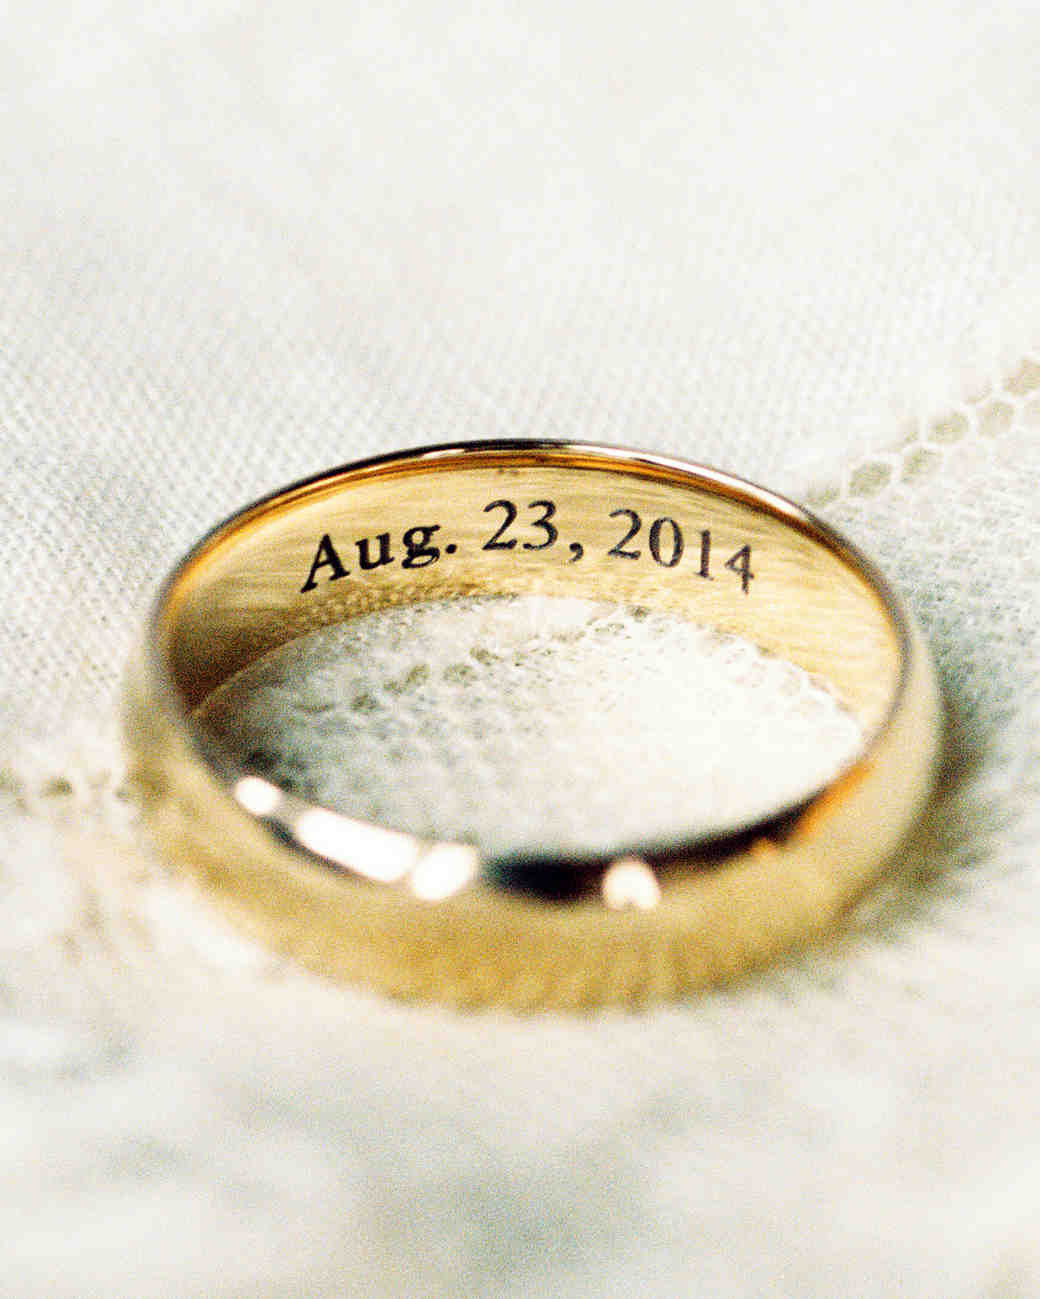 You Can't Find Your Wedding Ring. Now What?